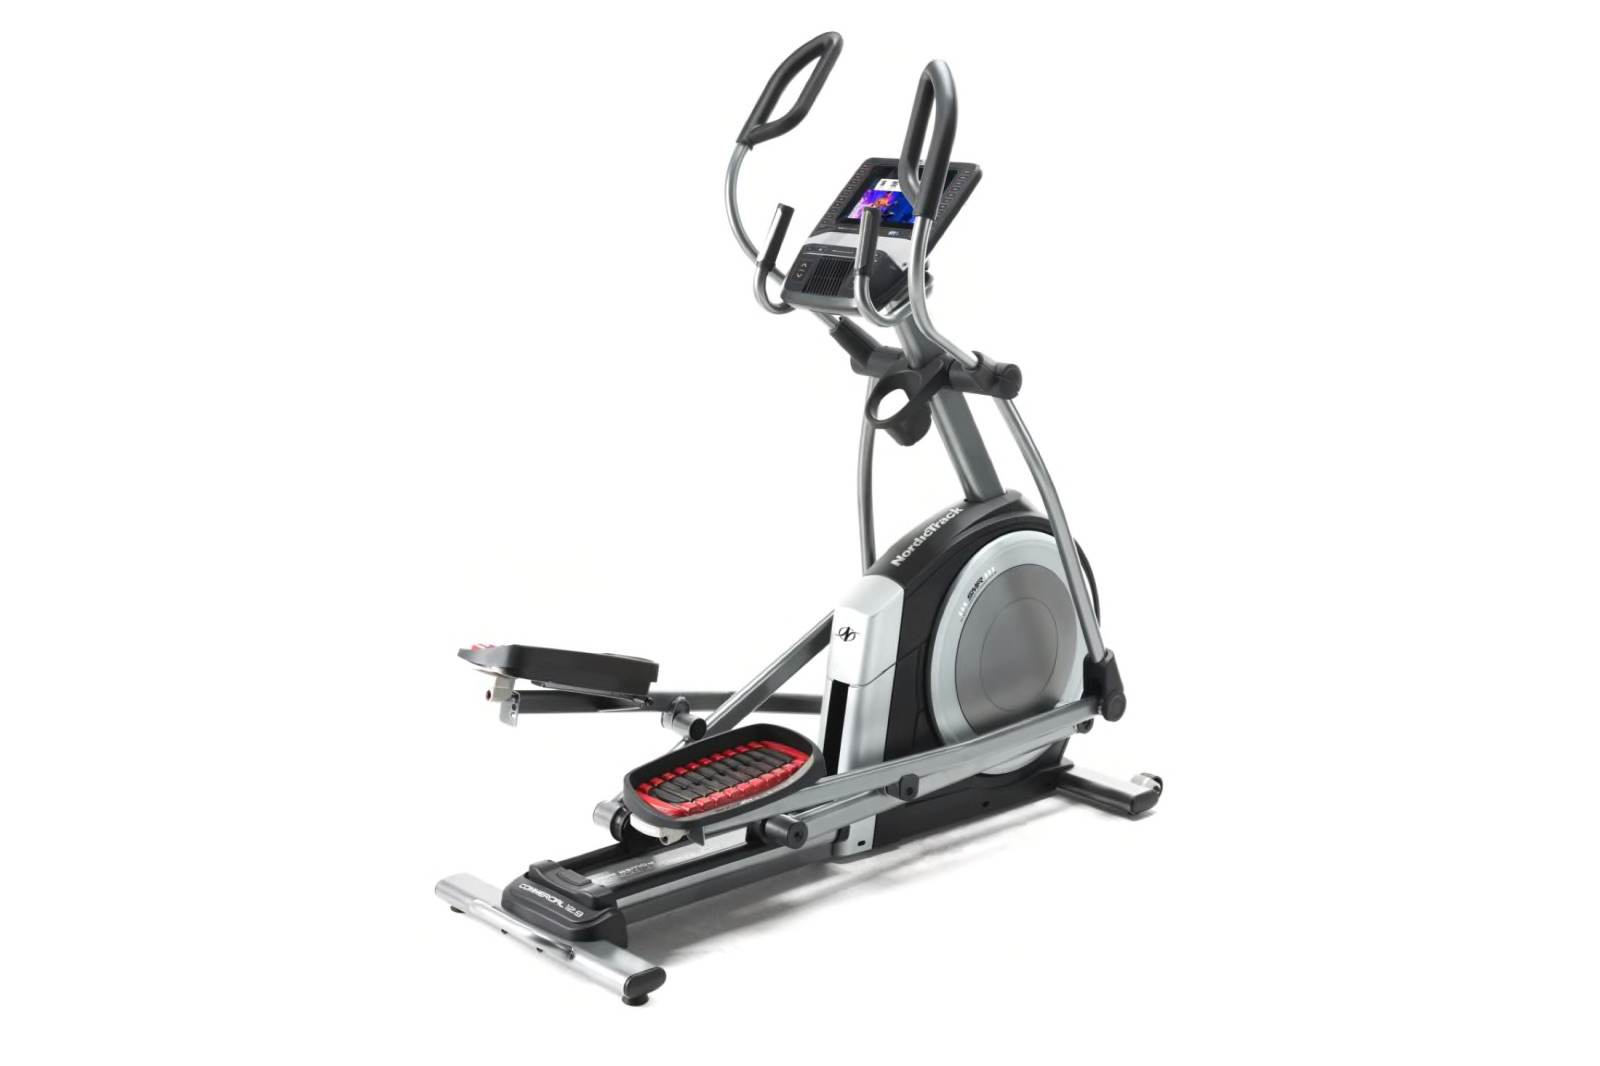 NordicTrack Elliptical - Front Drive Space Friendly Model